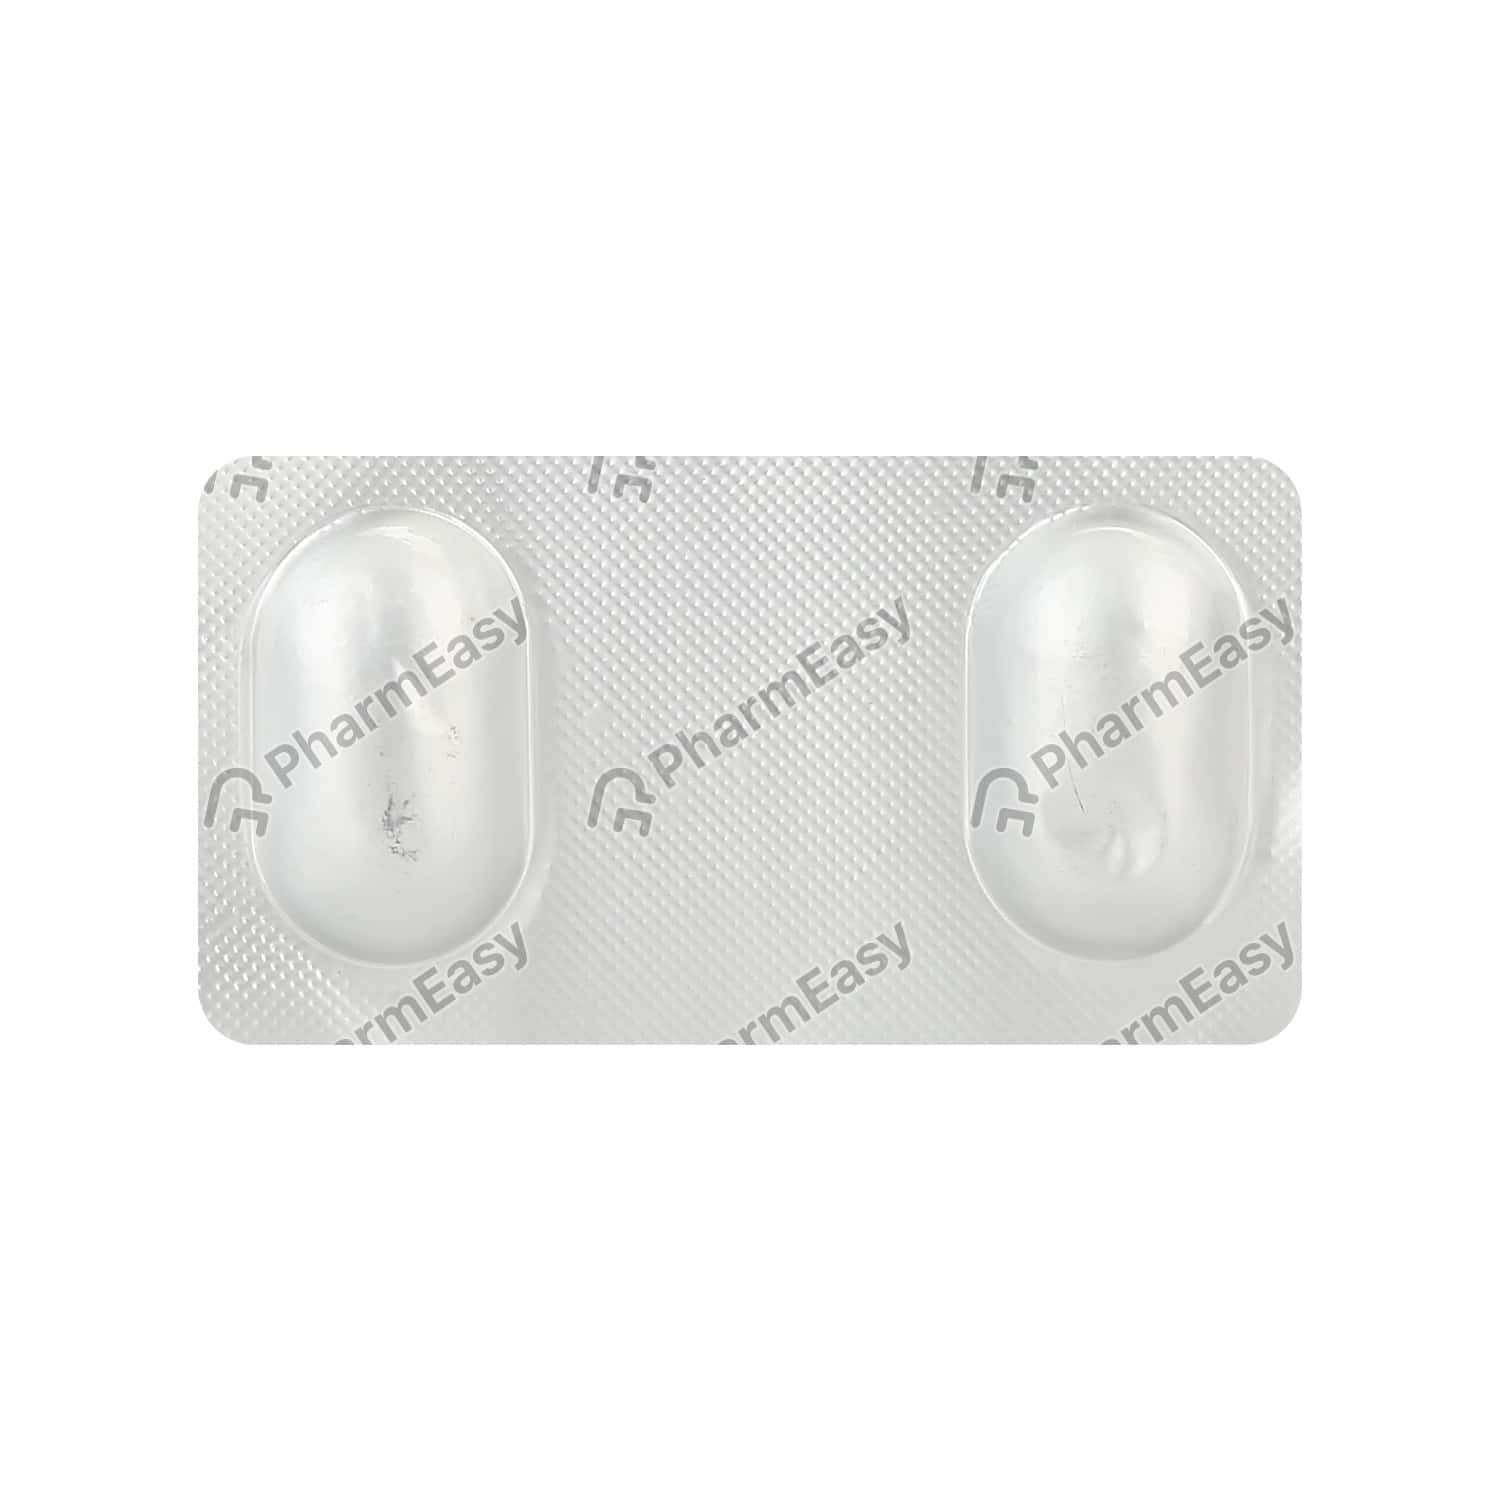 Valstead 450mg Strip Of 2 Tablets